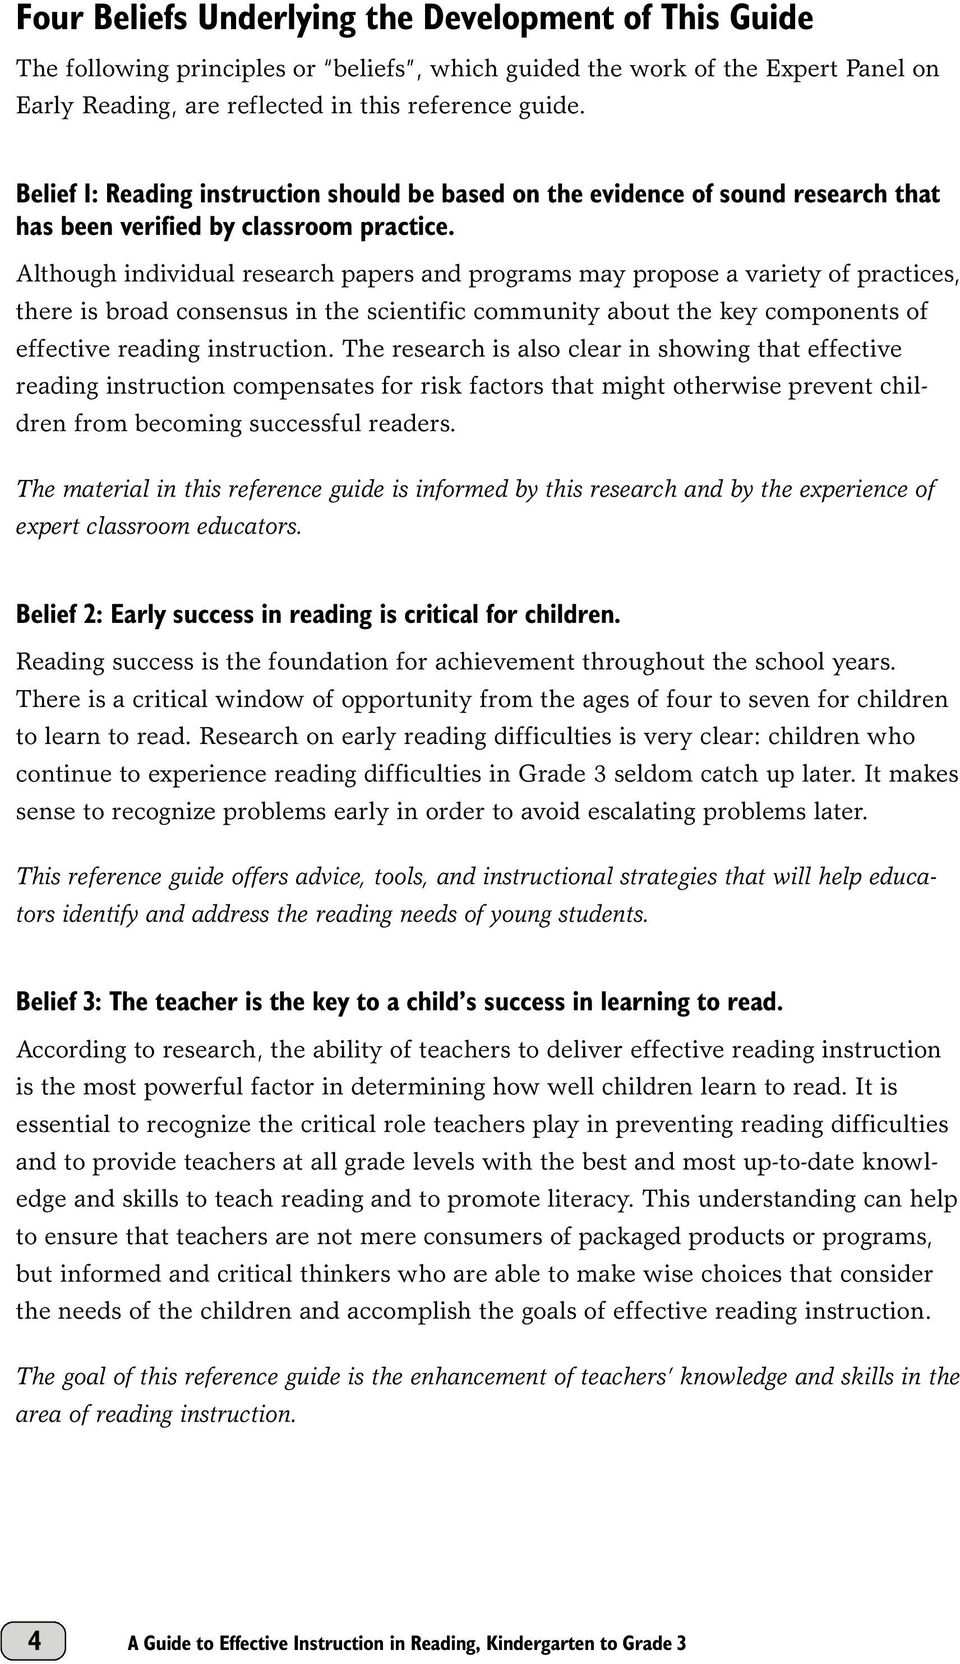 Although individual research papers and programs may propose a variety of practices, there is broad consensus in the scientific community about the key components of effective reading instruction.